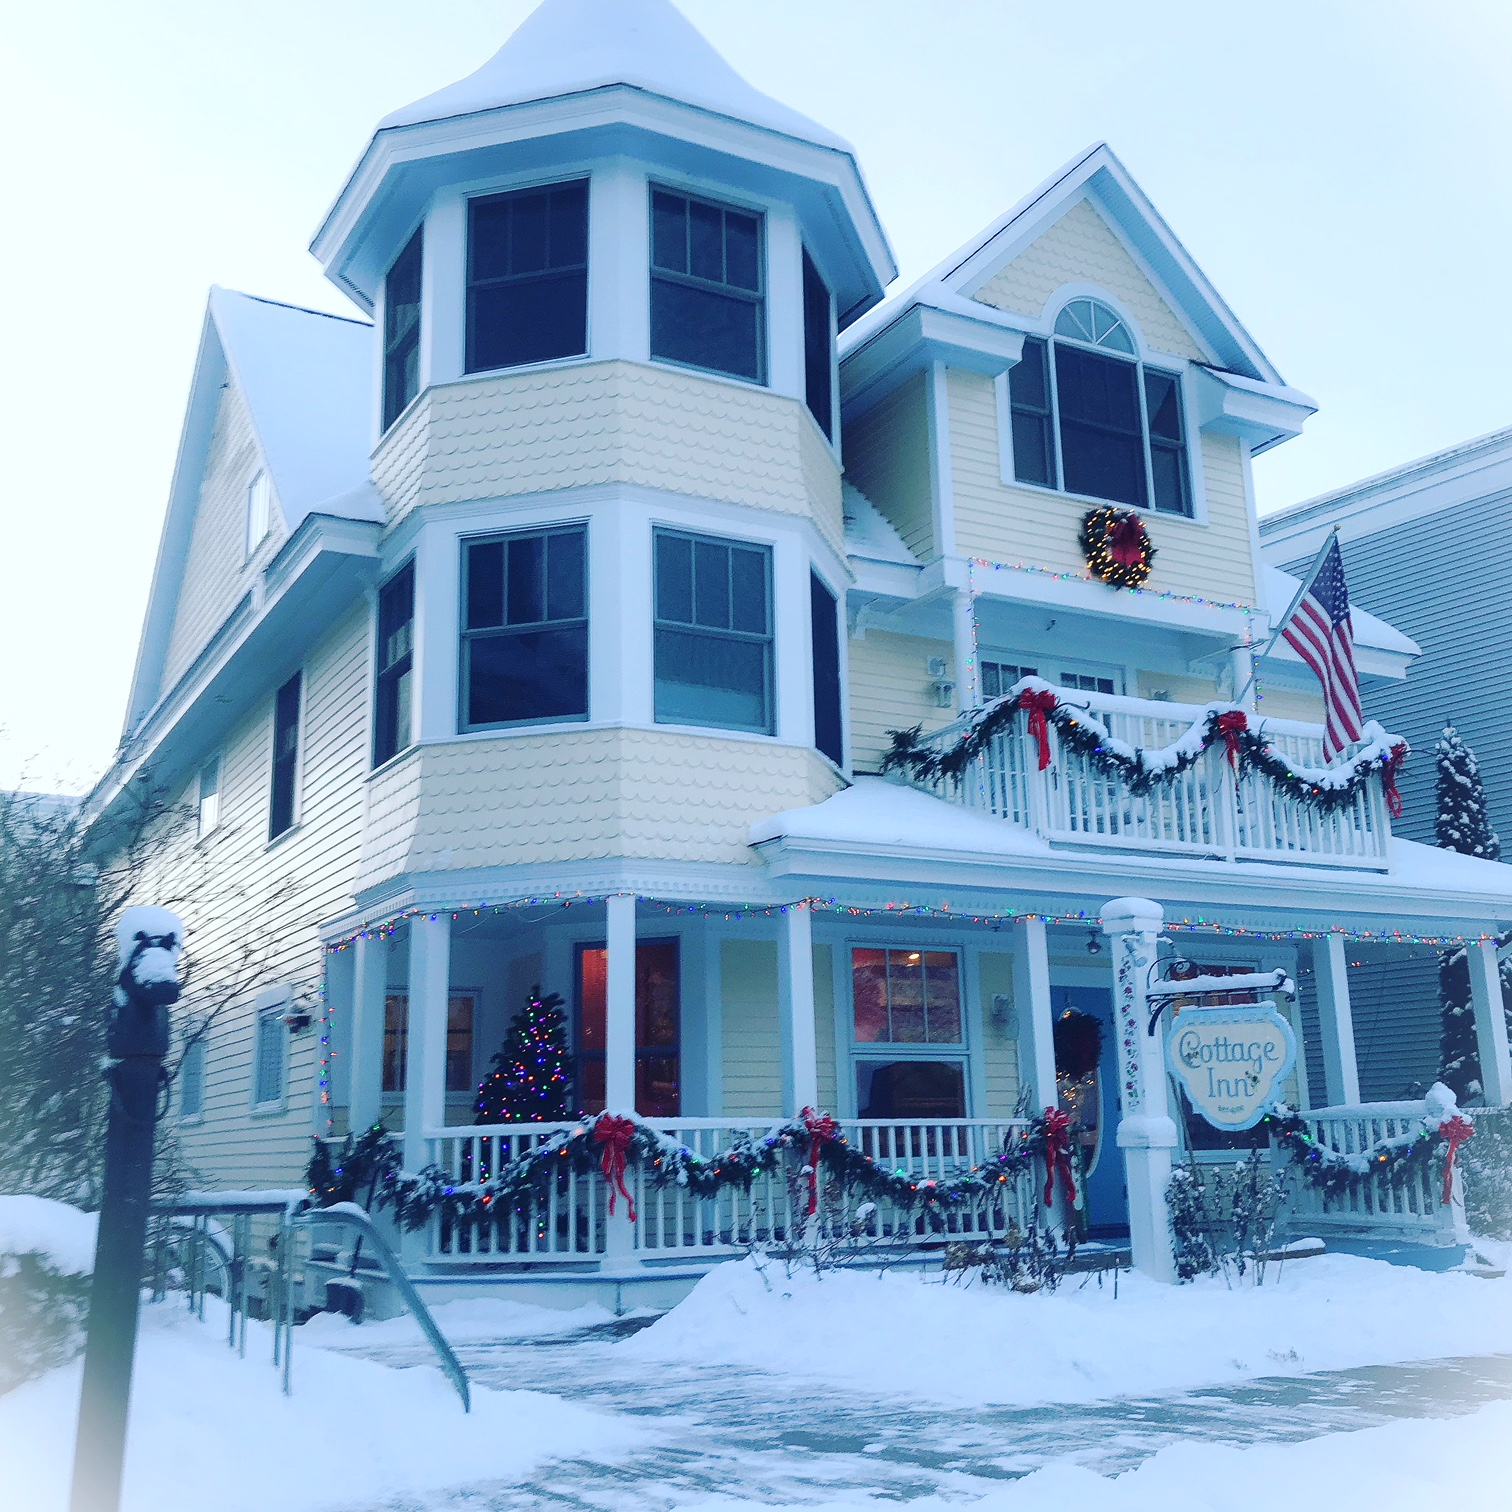 The Cottage Inn Mackinac Island Is A Charming Bed And